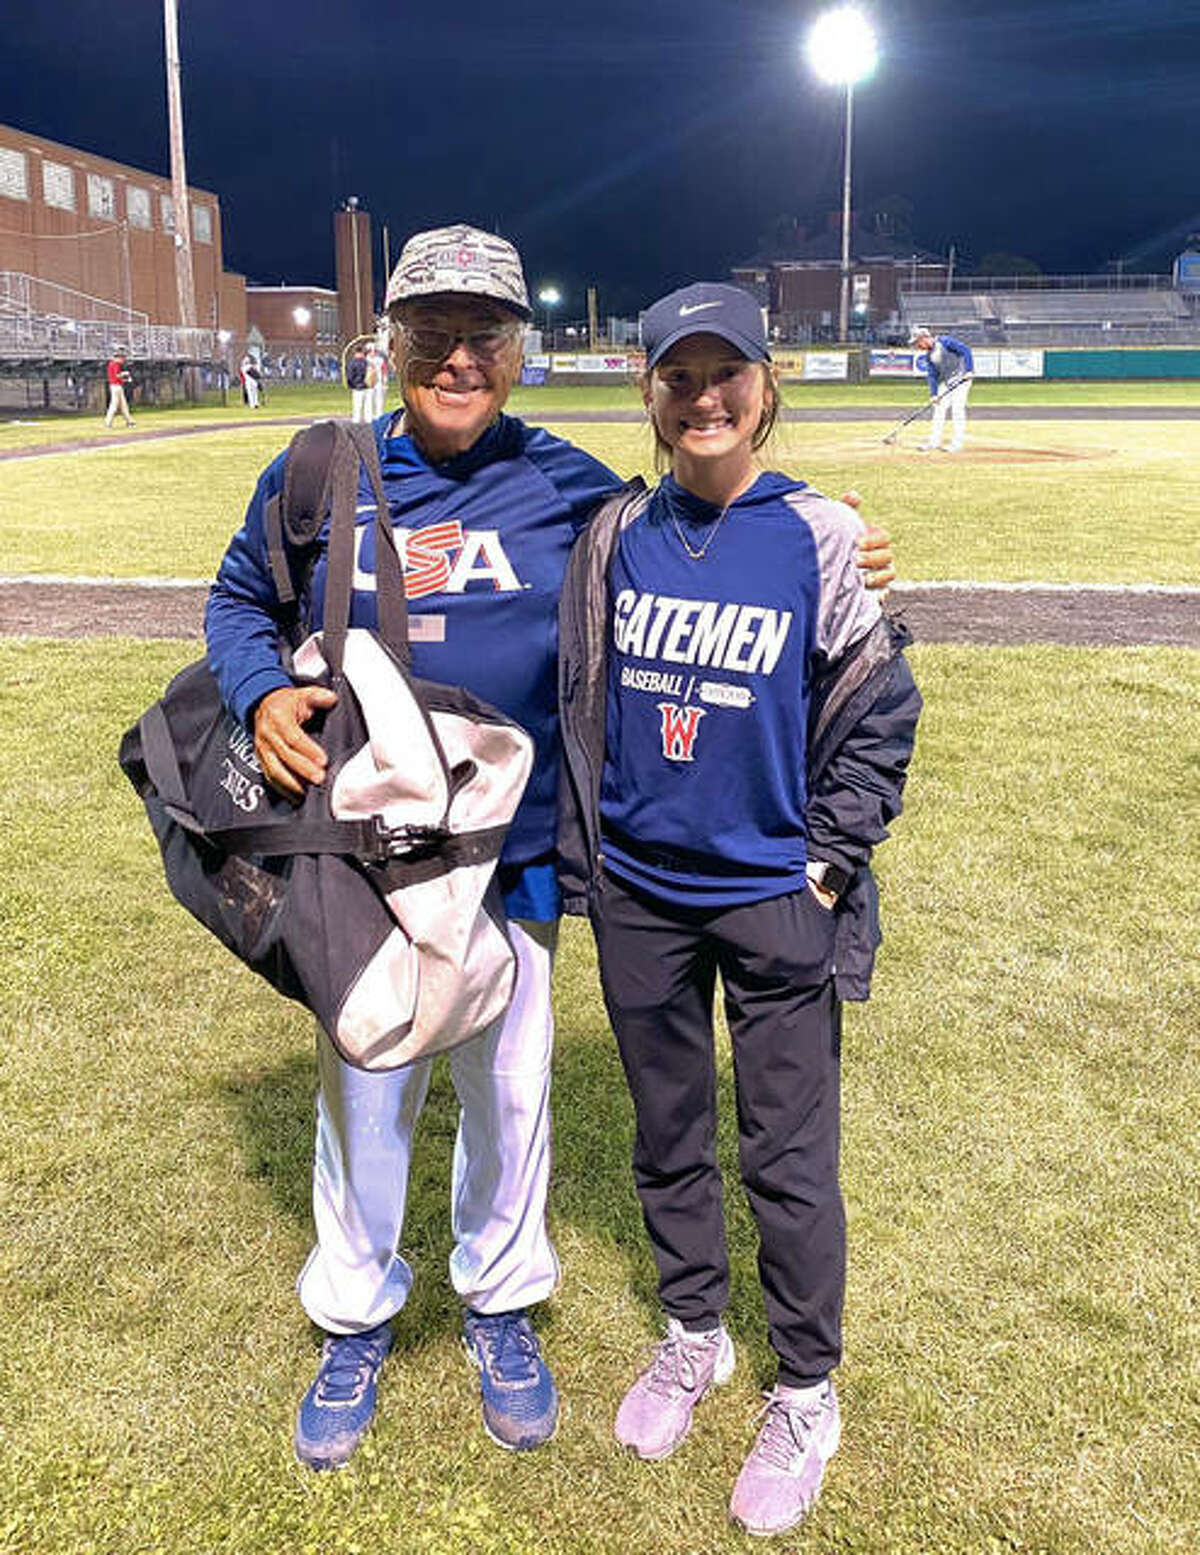 Lauren Taplin, right, worked with and learned from Colorado Rockies coach Jerry Weinstein this summer in the Cape Cod League. Weinstein is a coach for Team USA at the Olympics.